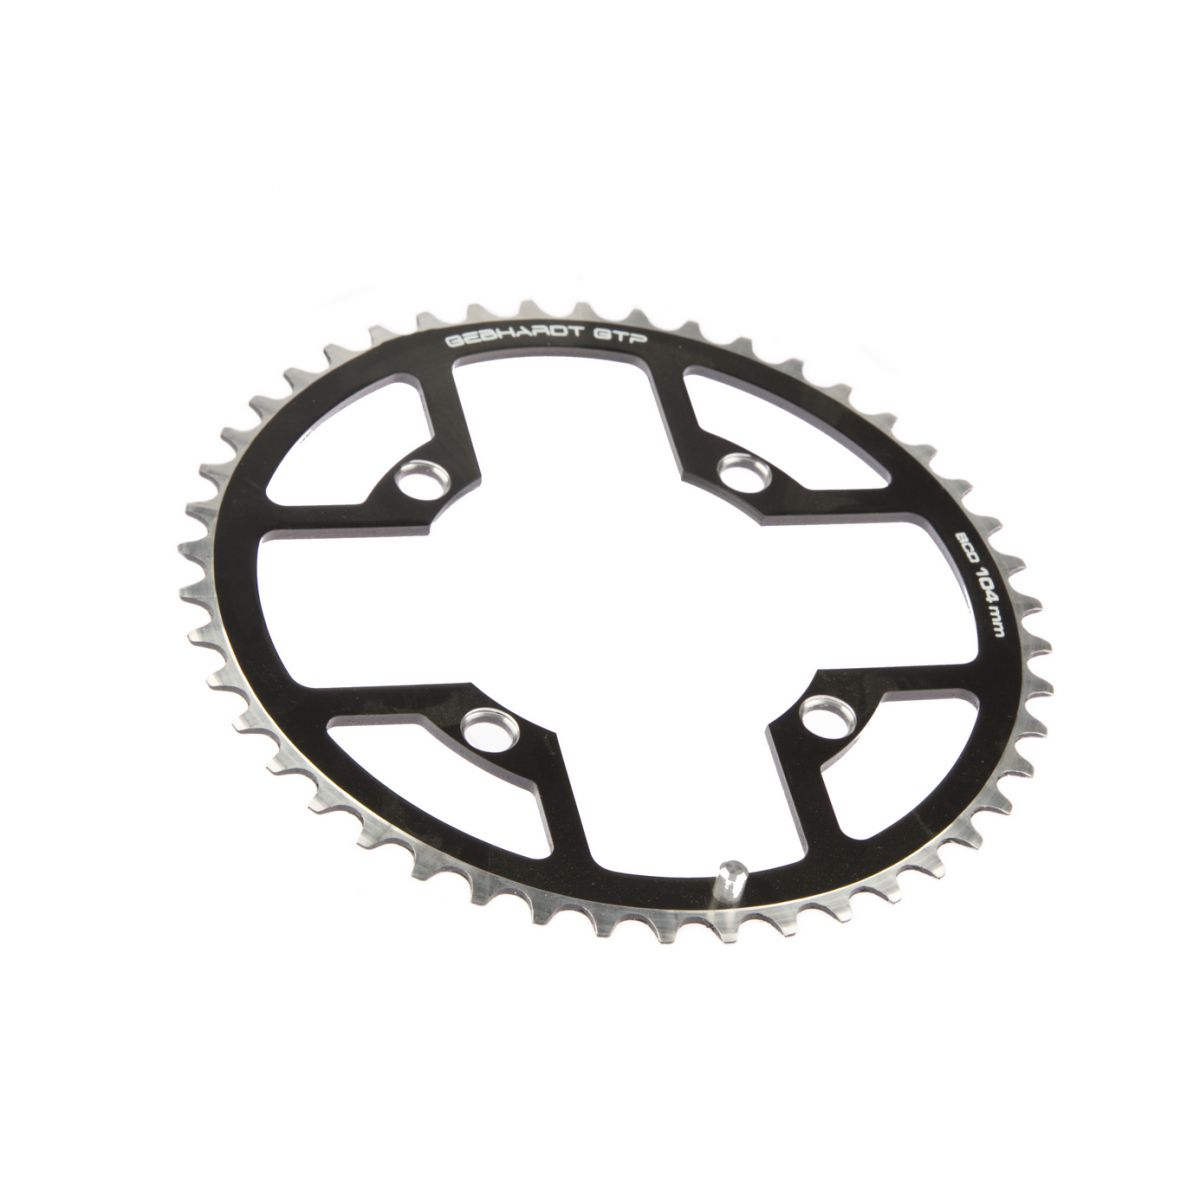 gebhardt chainring classic bcd 104 mm 4hole 46t black